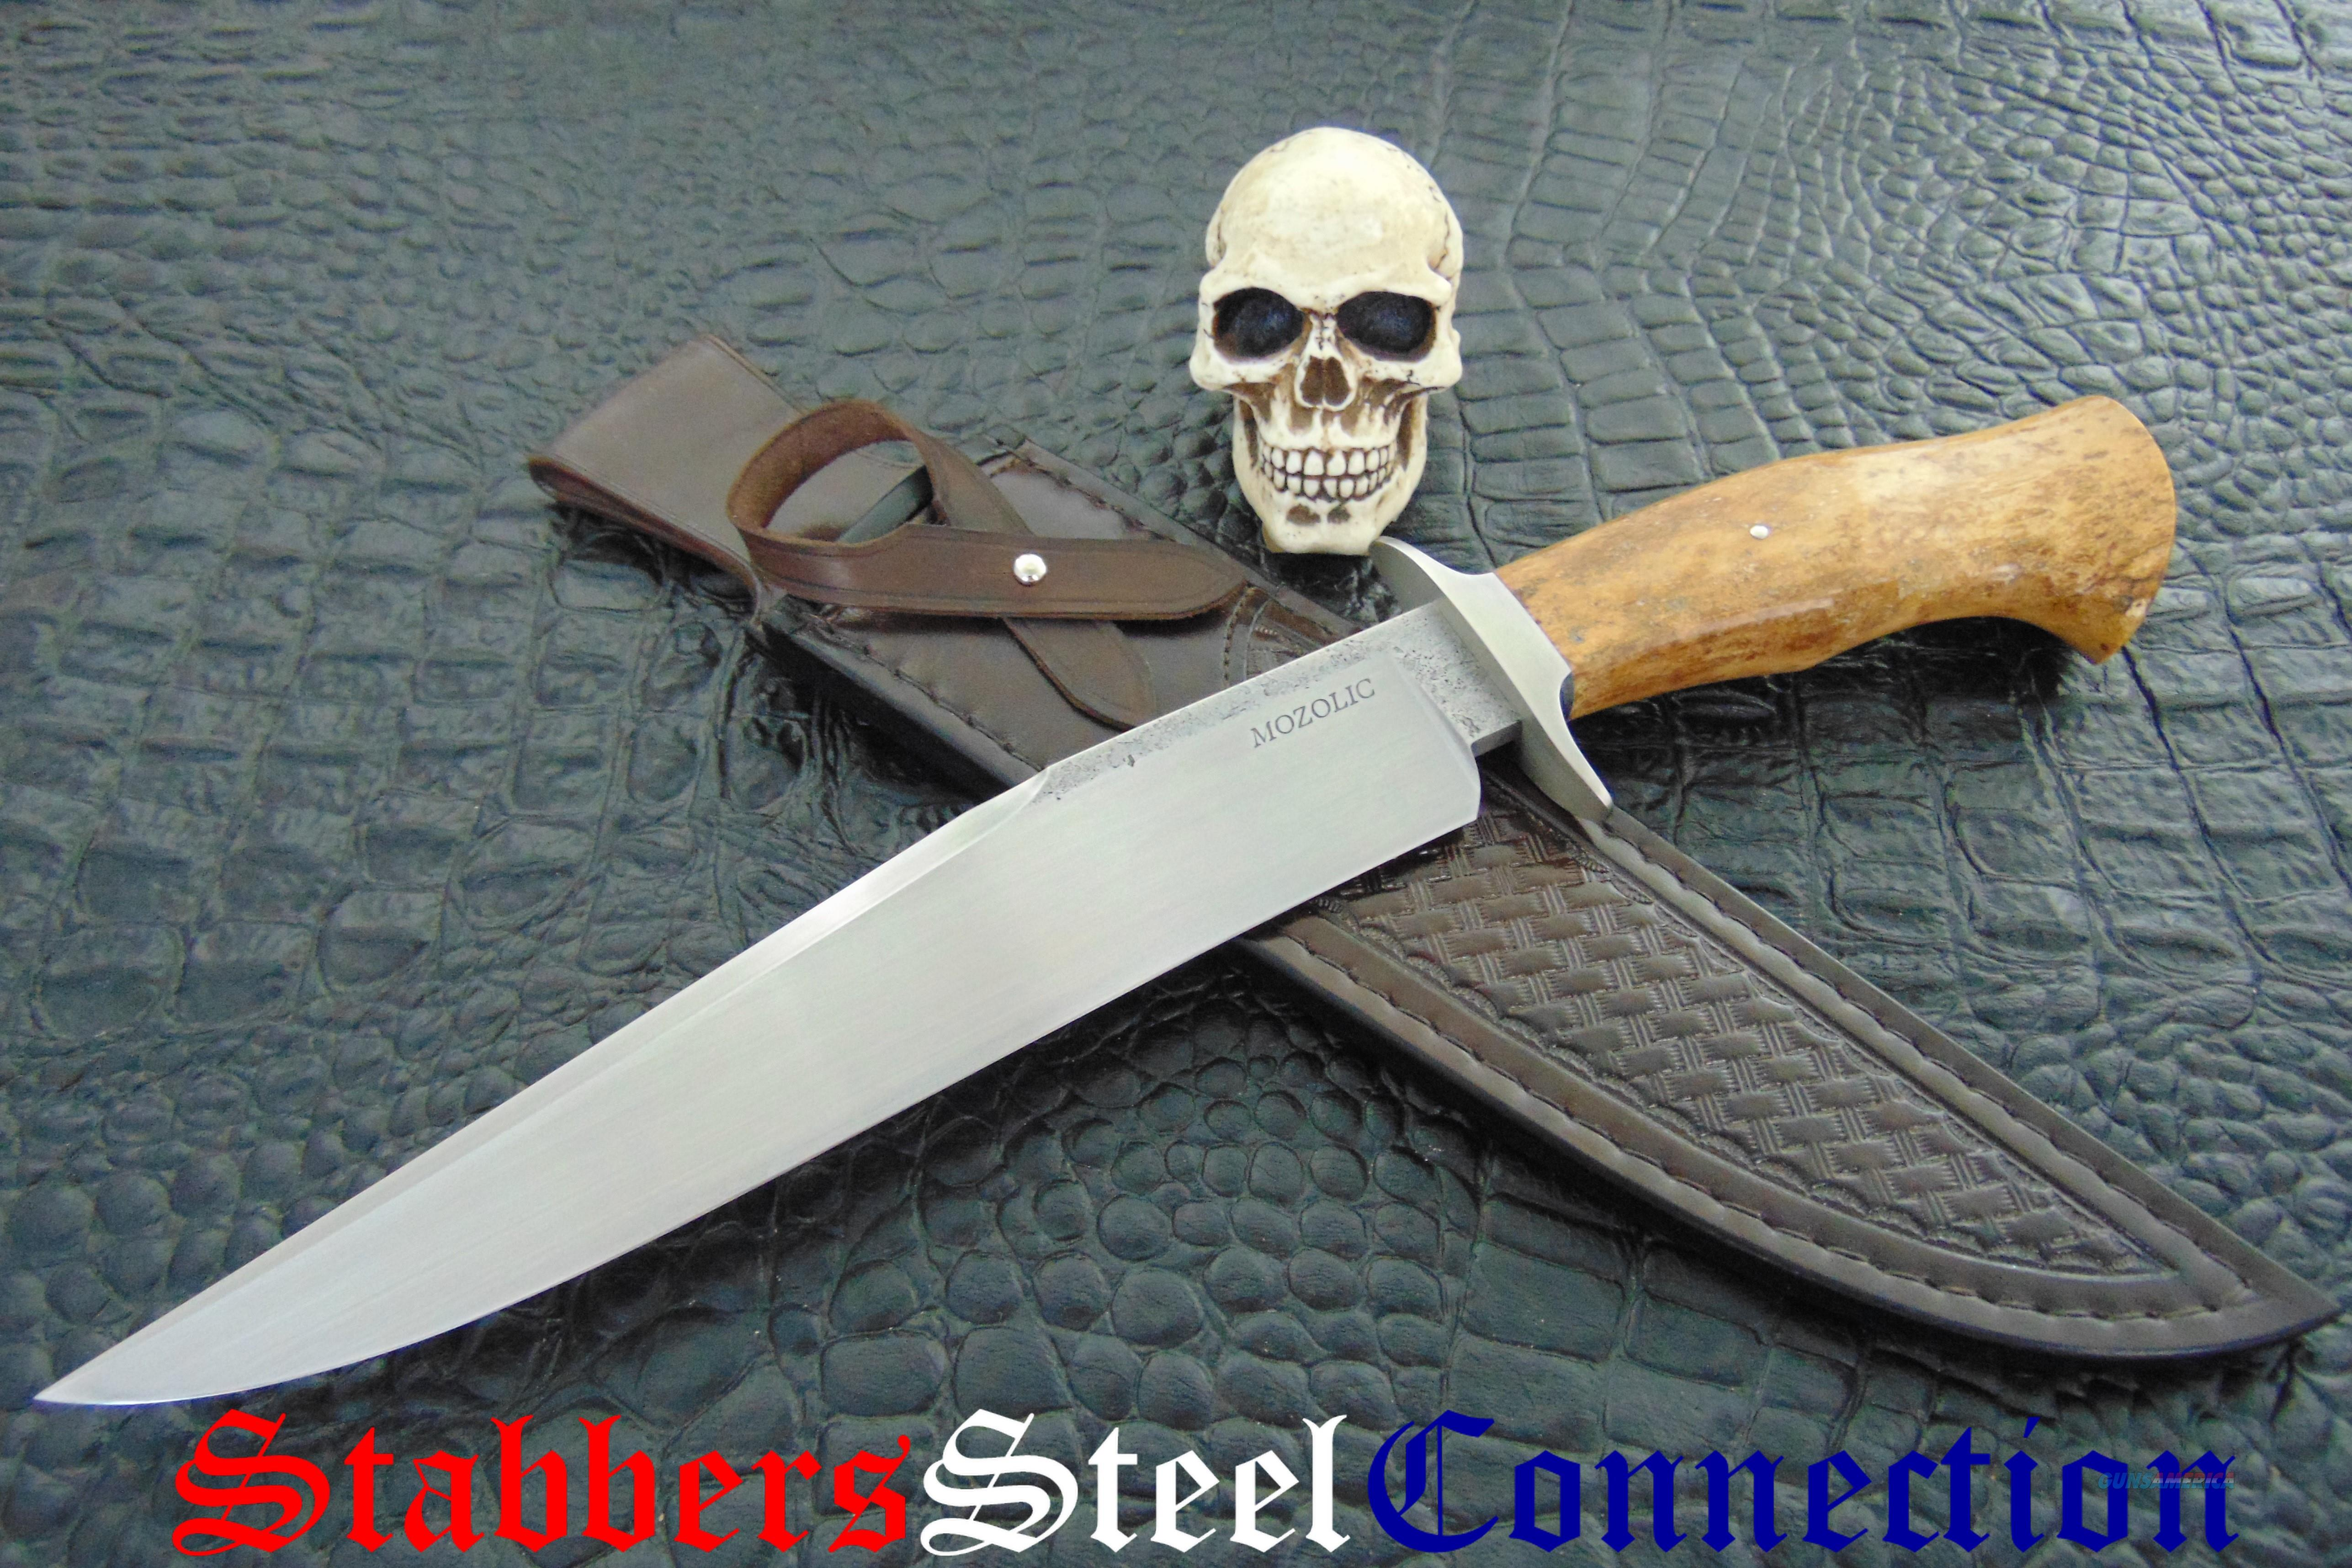 Milan Mozolic Gorgeous Hand Forged Stellar Sea Cow Fighter / Bowie  Non-Guns > Knives/Swords > Knives > Fixed Blade > Hand Made